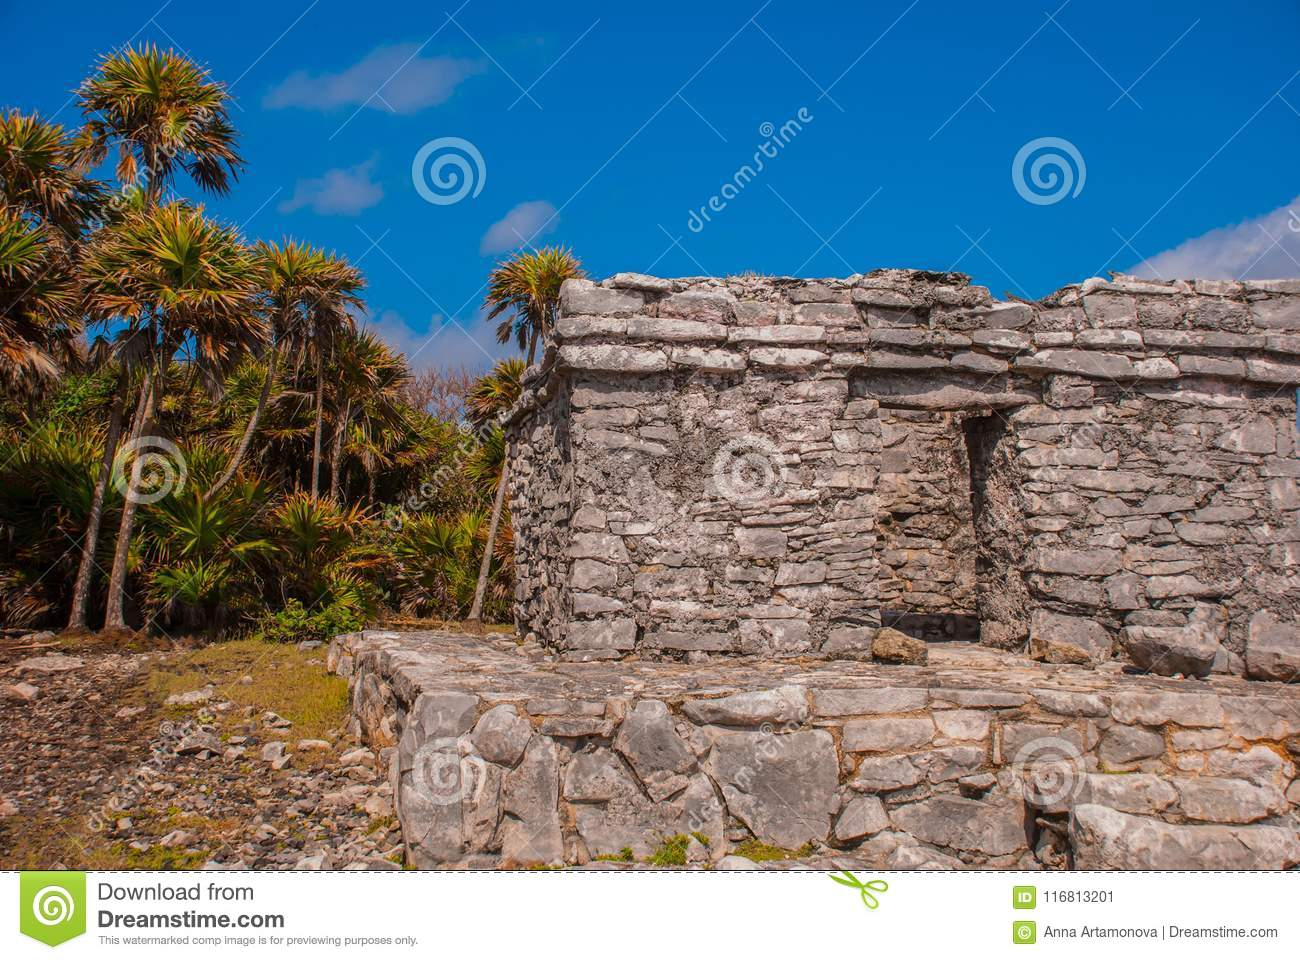 Tulum, Mexico, Yucatan, Riviera Maya: The ruins of the ancient Mayan city archeological site in Tulum